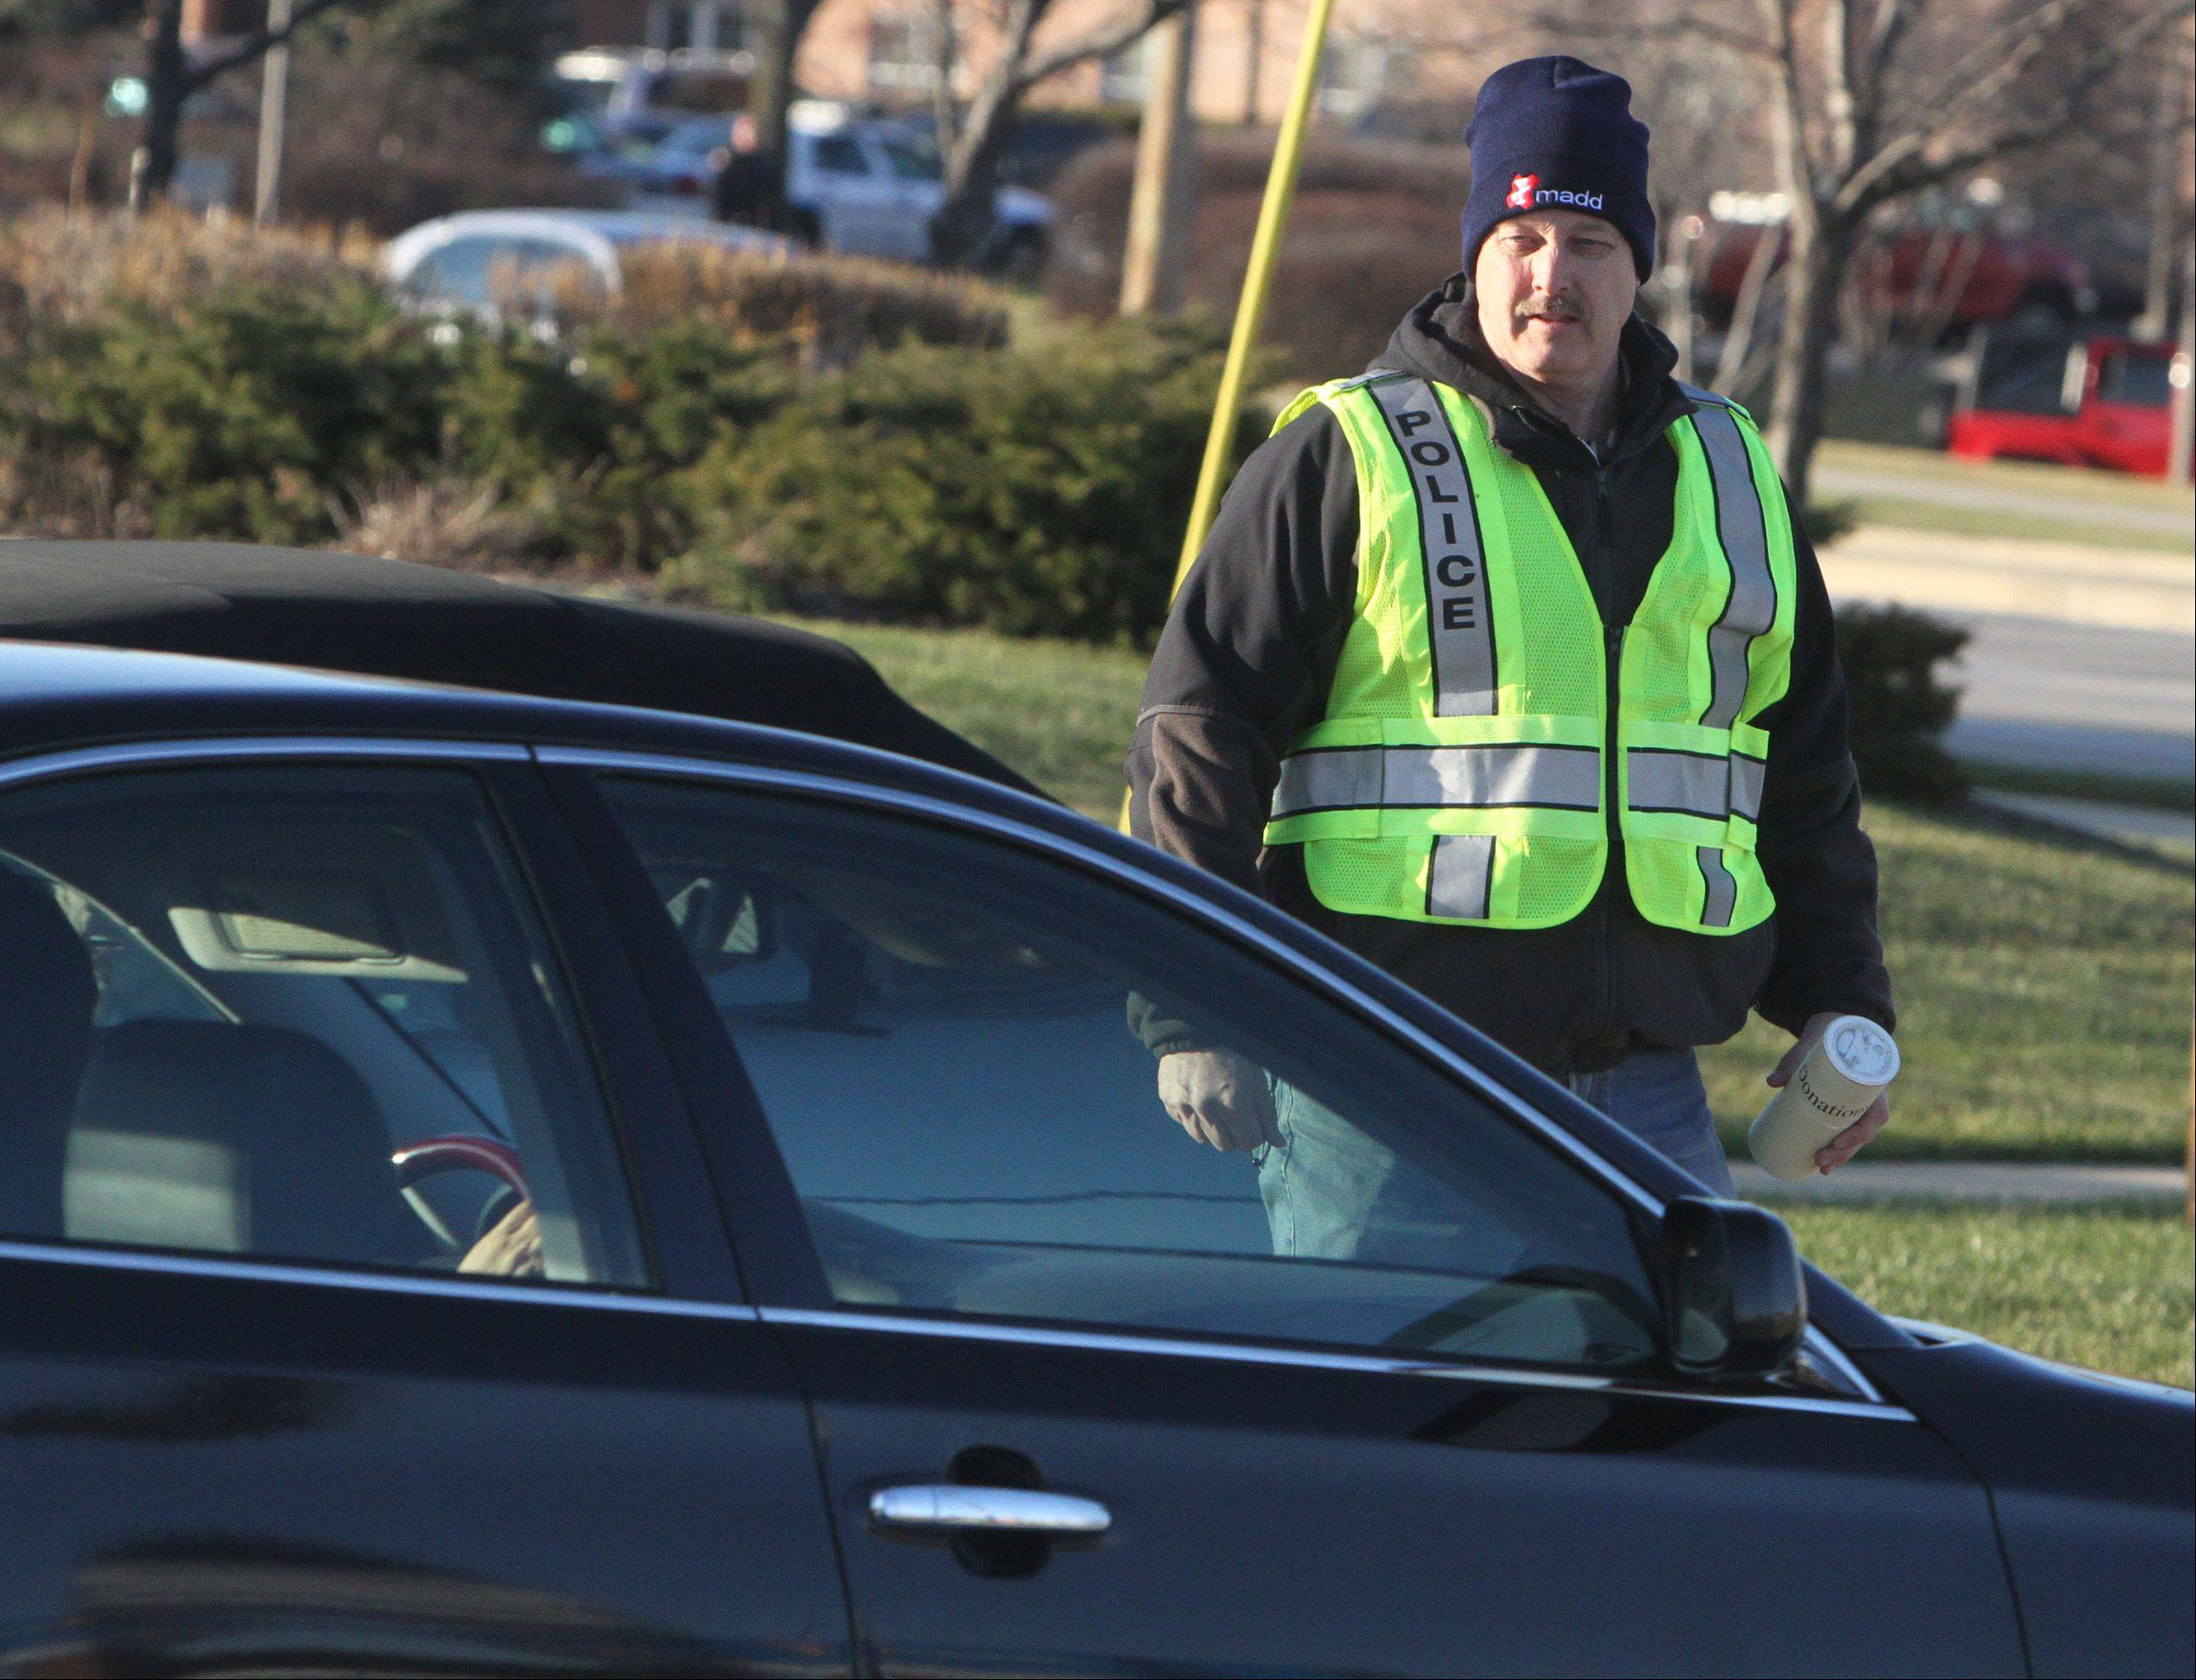 Sgt. Scott Kristiansen poses as a solicitor as he checks to see if drivers are using mobile devices while driving north through the intersection of Arlington Heights Road and Rt. 83 in Buffalo Grove. Kristiansen used unorthodox tactics to boost safety.